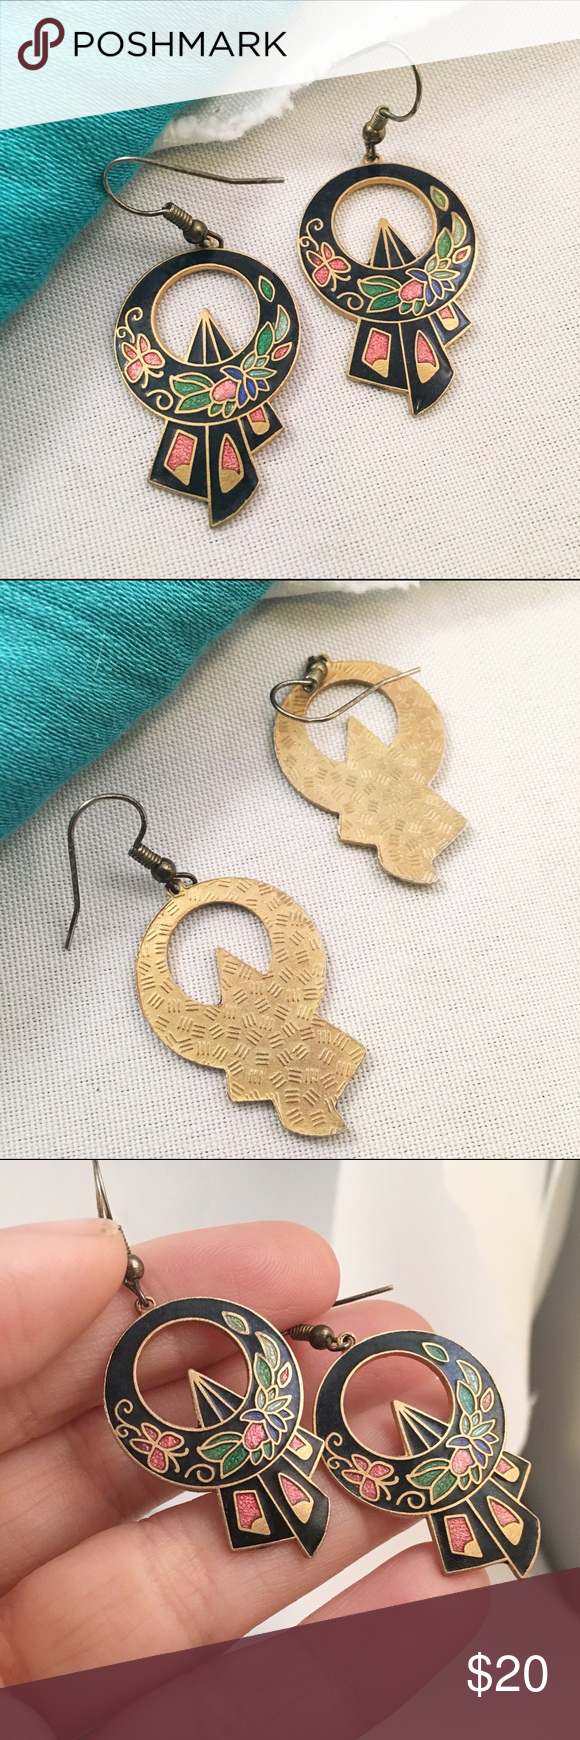 """VINTAGE Cloisonné Buckle Drop Earrings From the late 1980s. Great design. Enamel in mint condition. Approx 2"""" drop💕 Vintage Jewelry Earrings"""